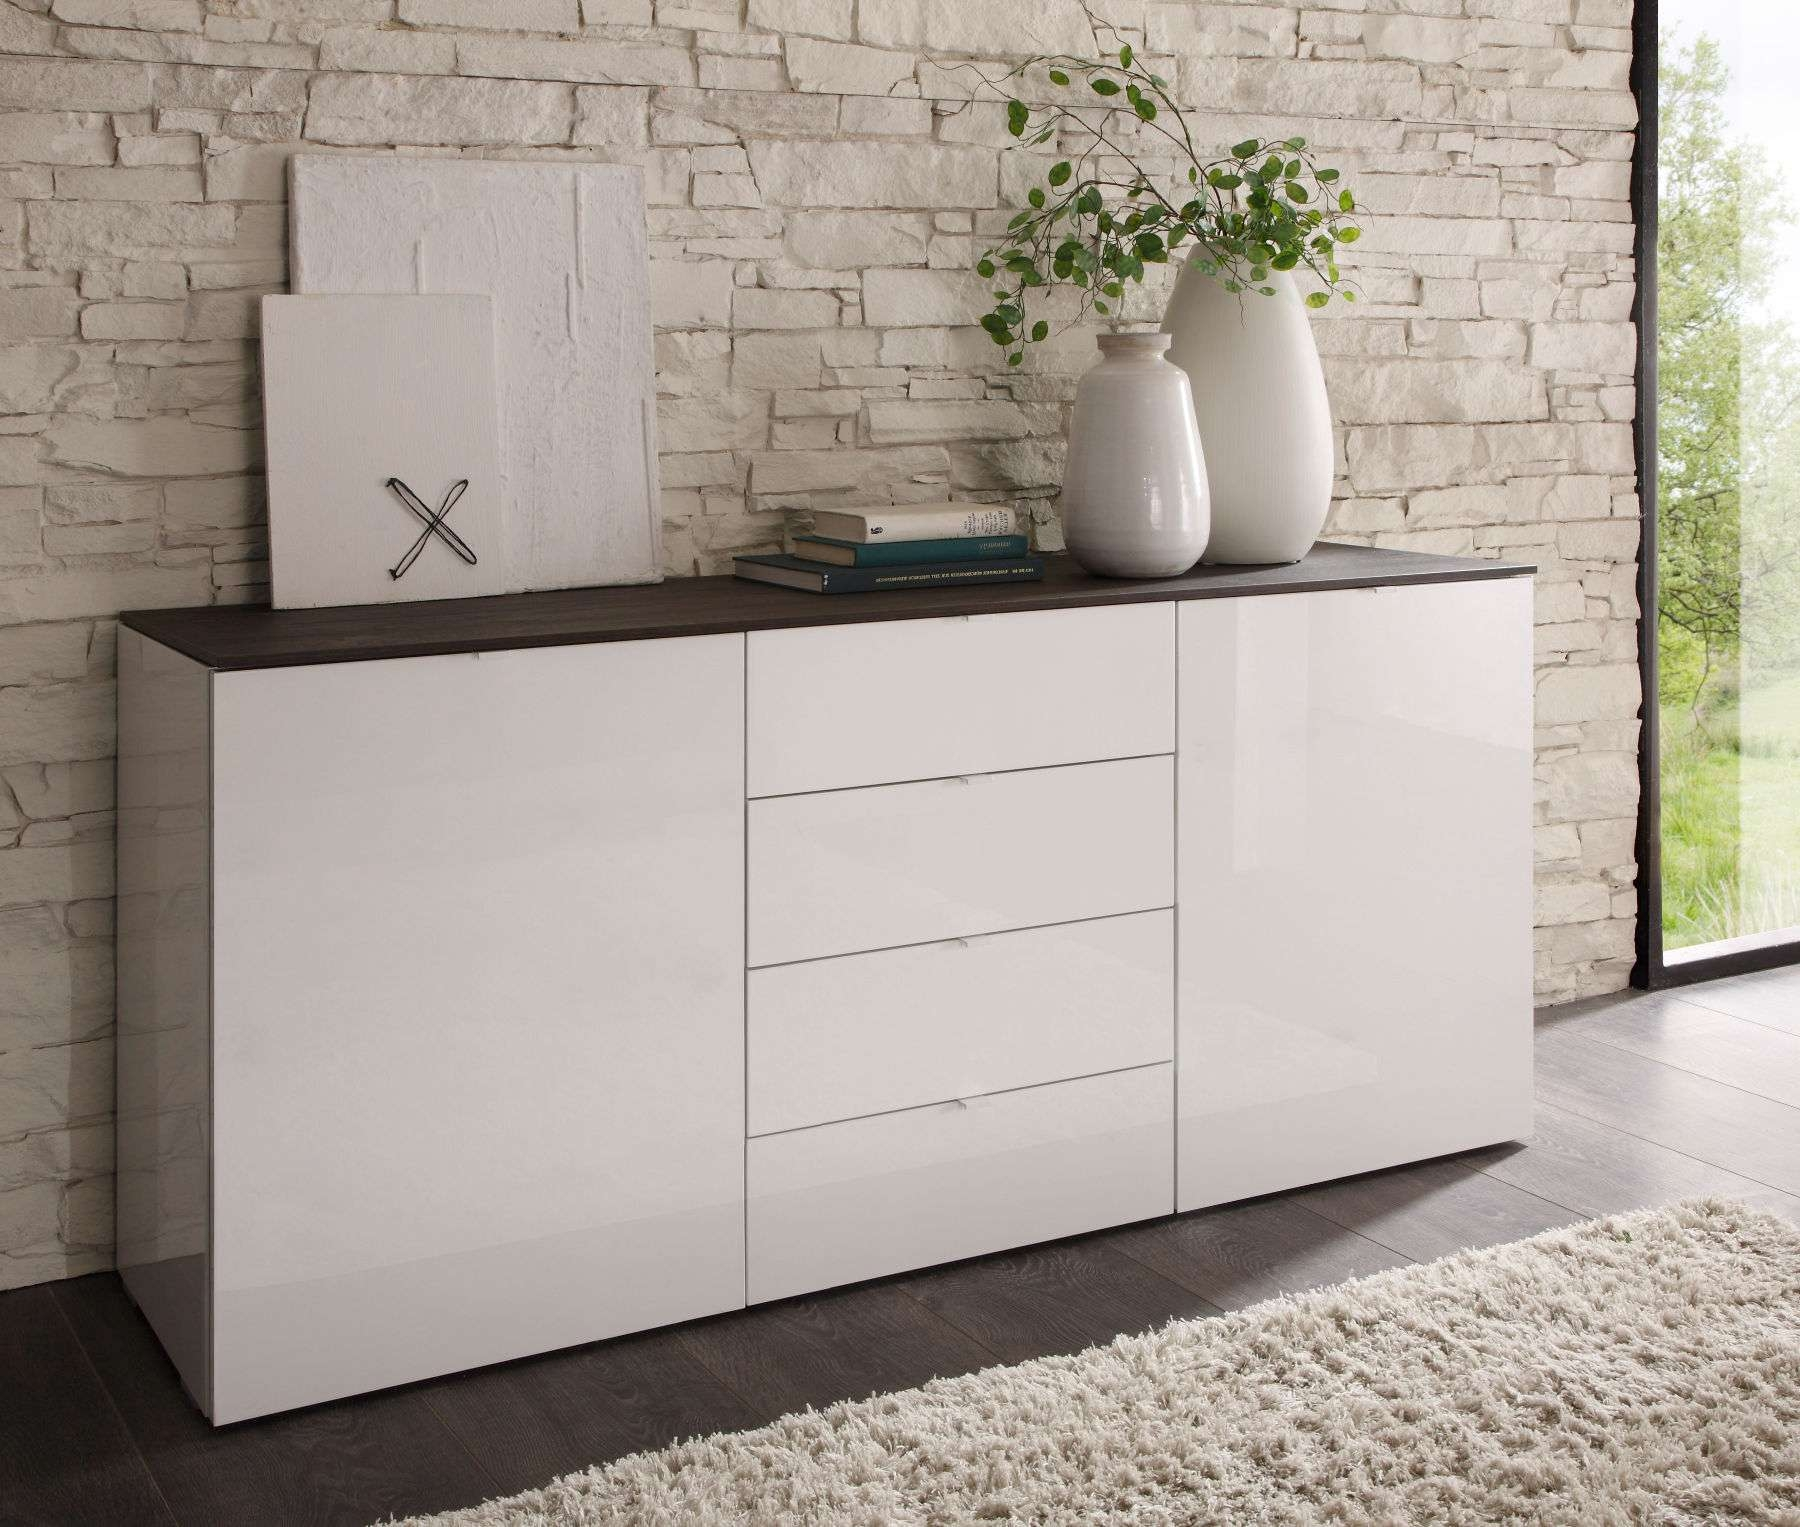 20 inspirations of kommoden sideboards. Black Bedroom Furniture Sets. Home Design Ideas